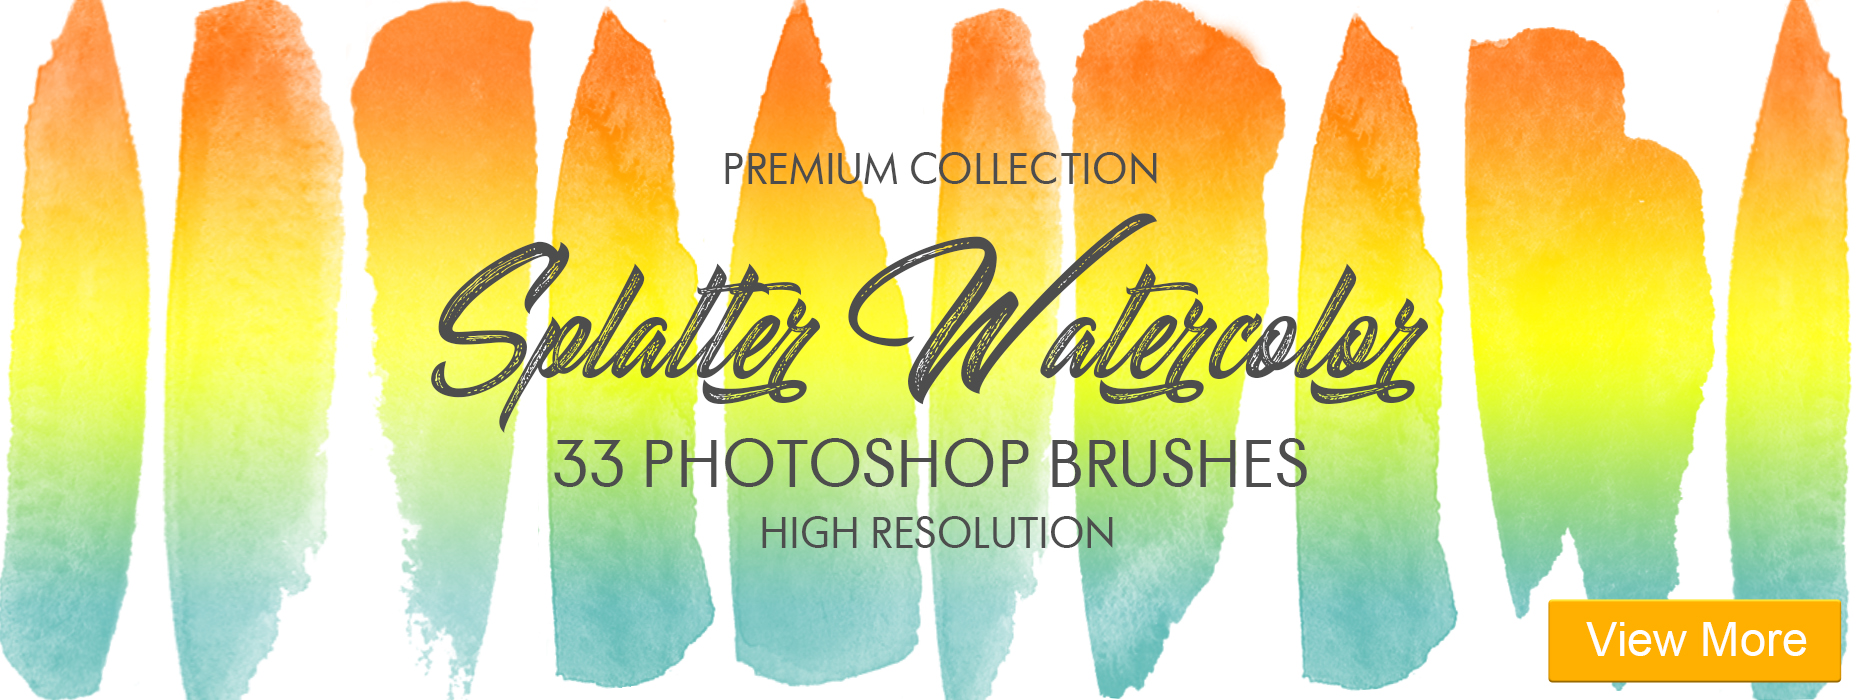 free spray paint brushes photoshop splatter watercolor 33 brushes banner